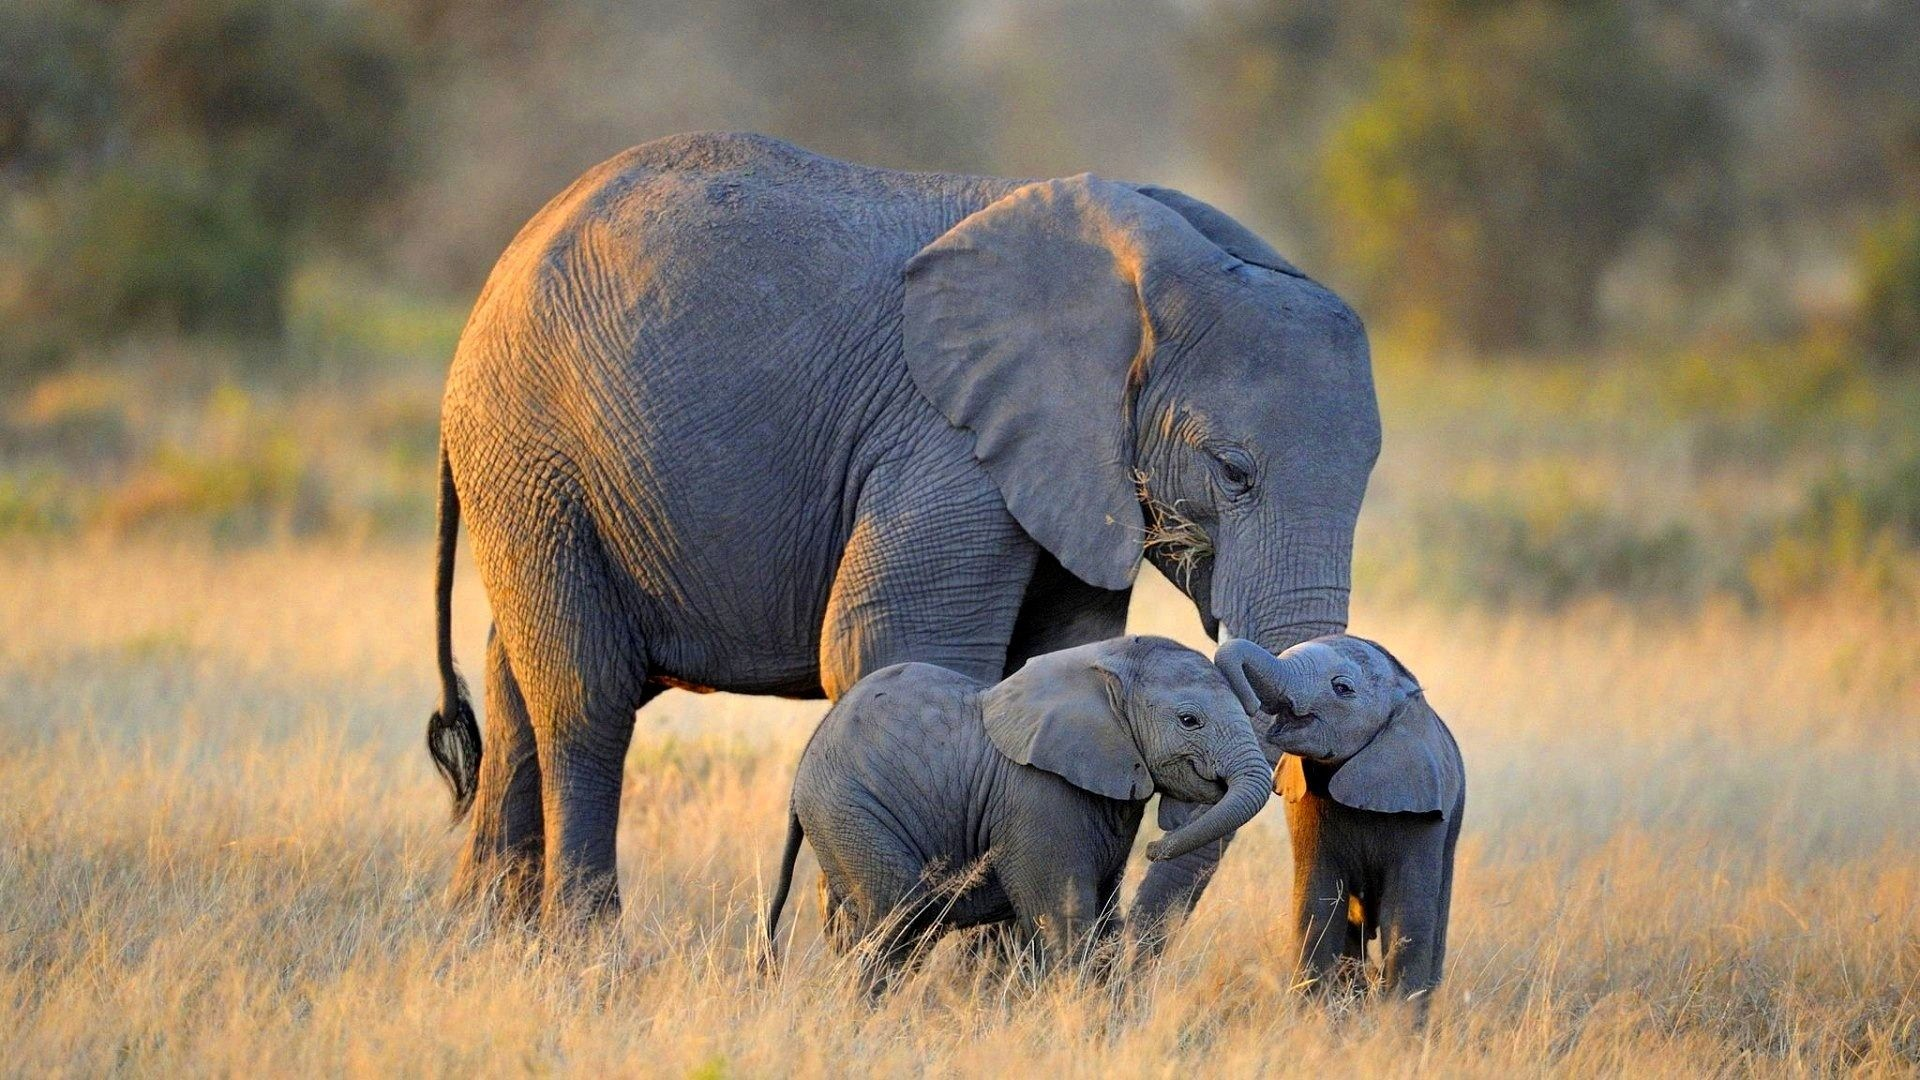 Baby Elephant Wallpaper 66 Images